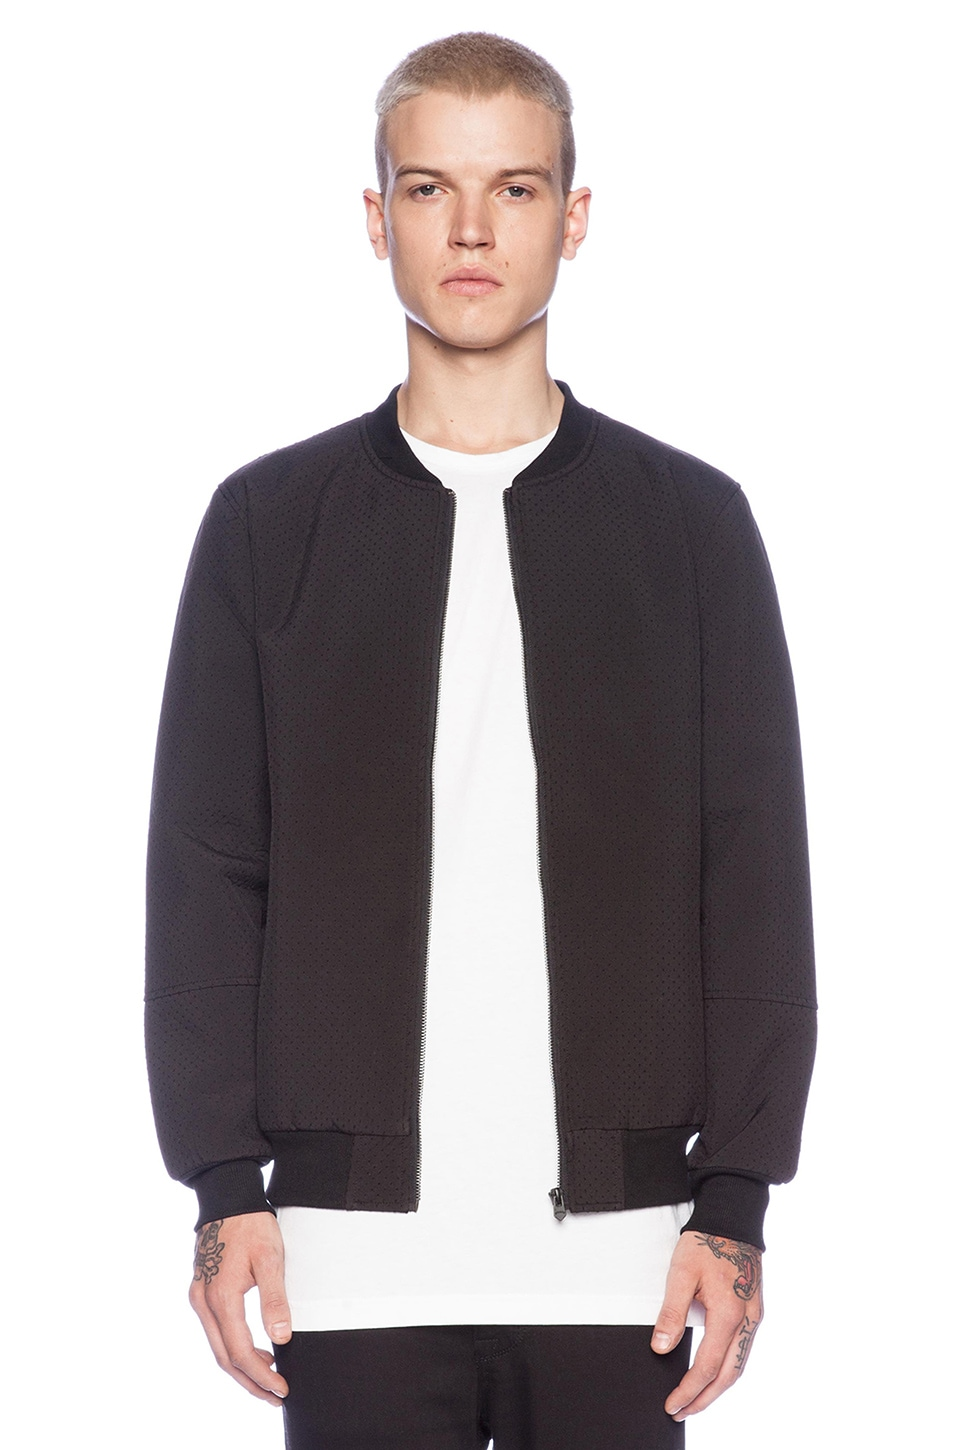 Stampd Perforated Neoprene Bomber Jacket in Black | REVOLVE